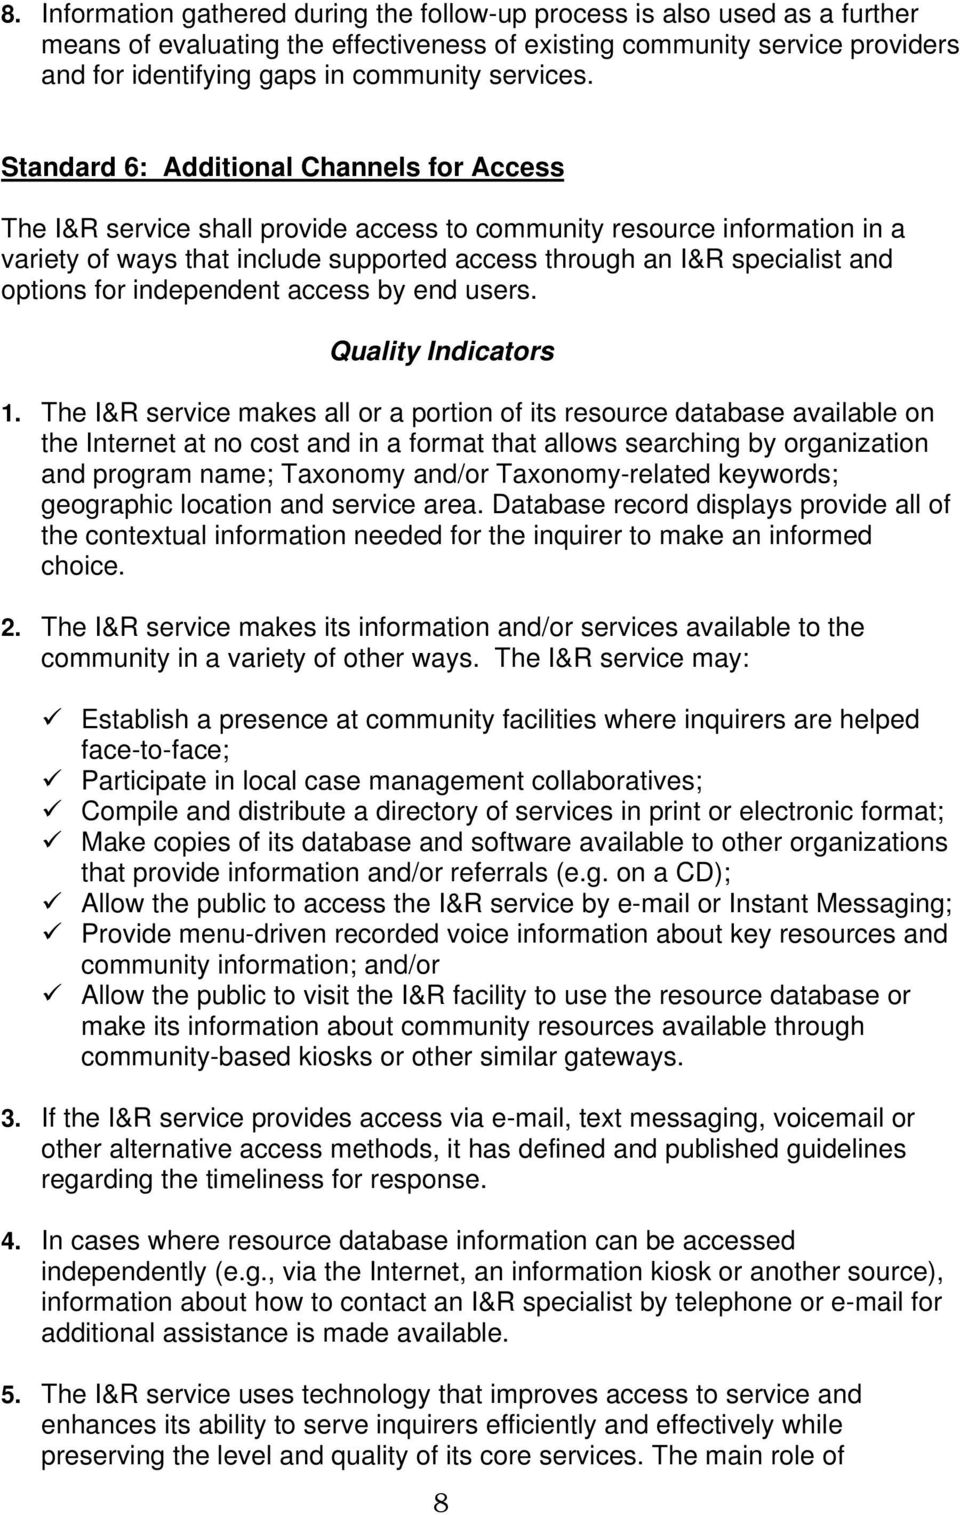 Standard 6: Additional Channels for Access The I&R service shall provide access to community resource information in a variety of ways that include supported access through an I&R specialist and